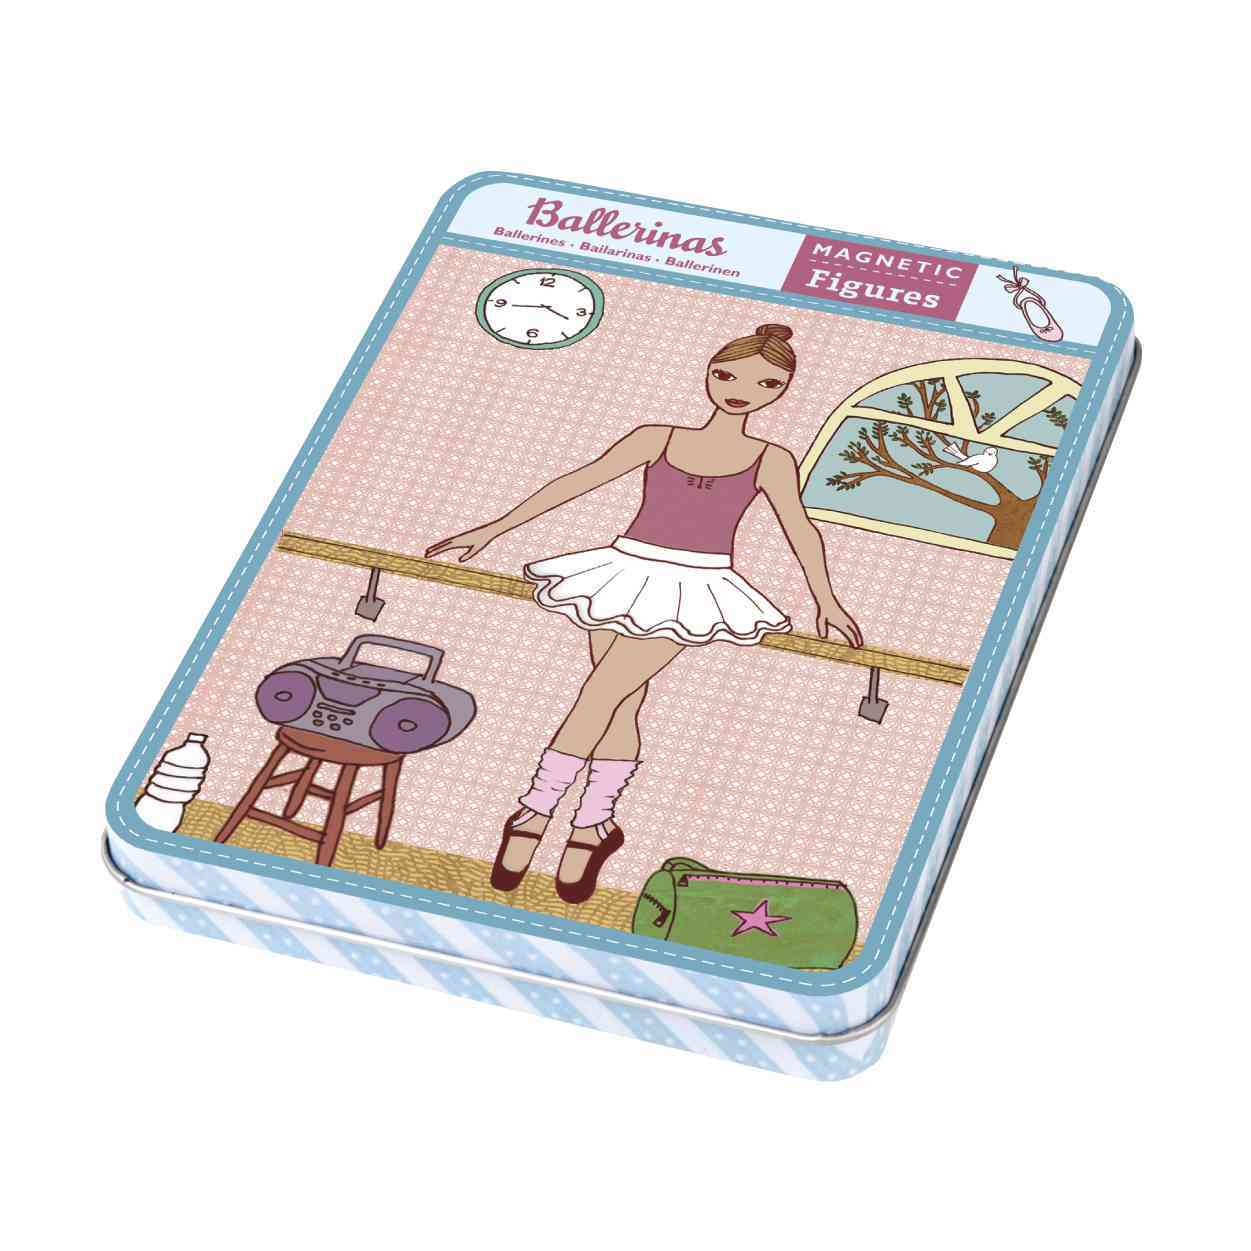 Ballerinas Magnetic Figures By Siminovich, Lorena (ILT)